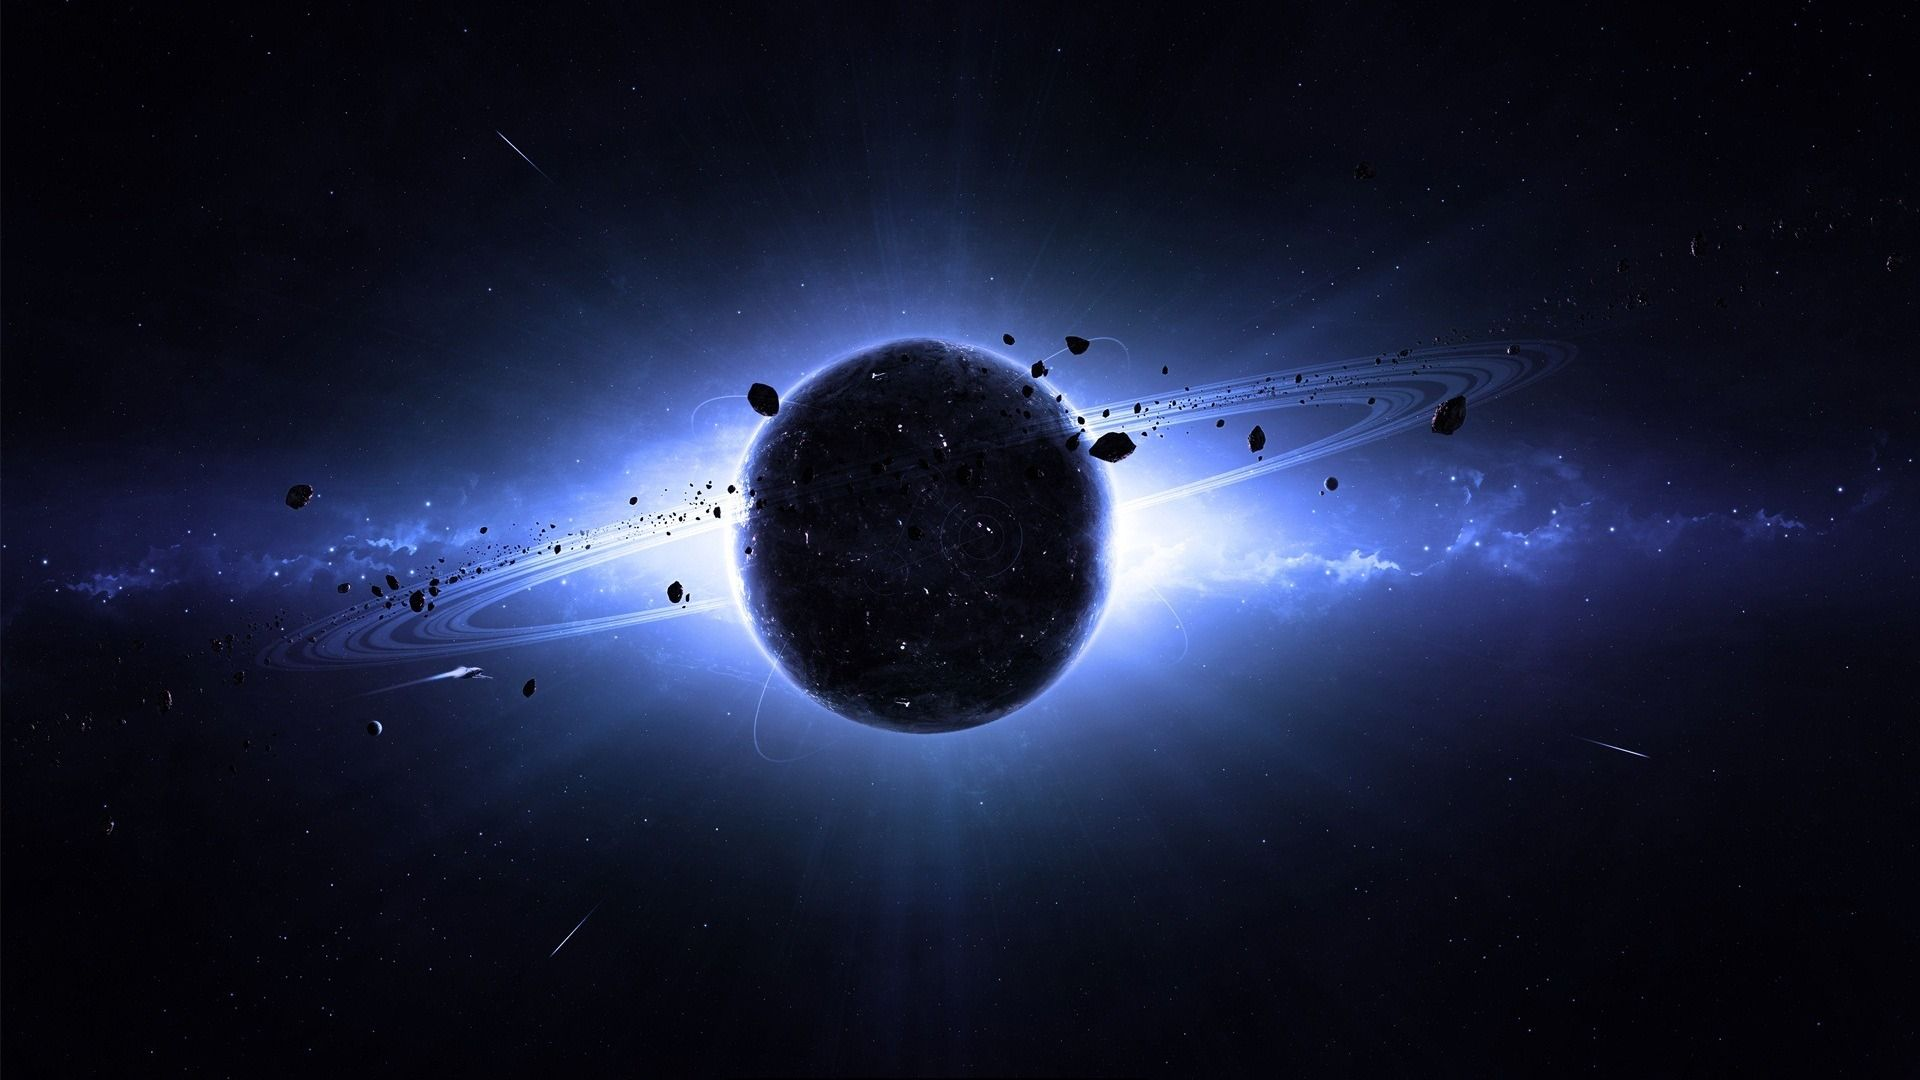 Space Wallpapers 1920x1080